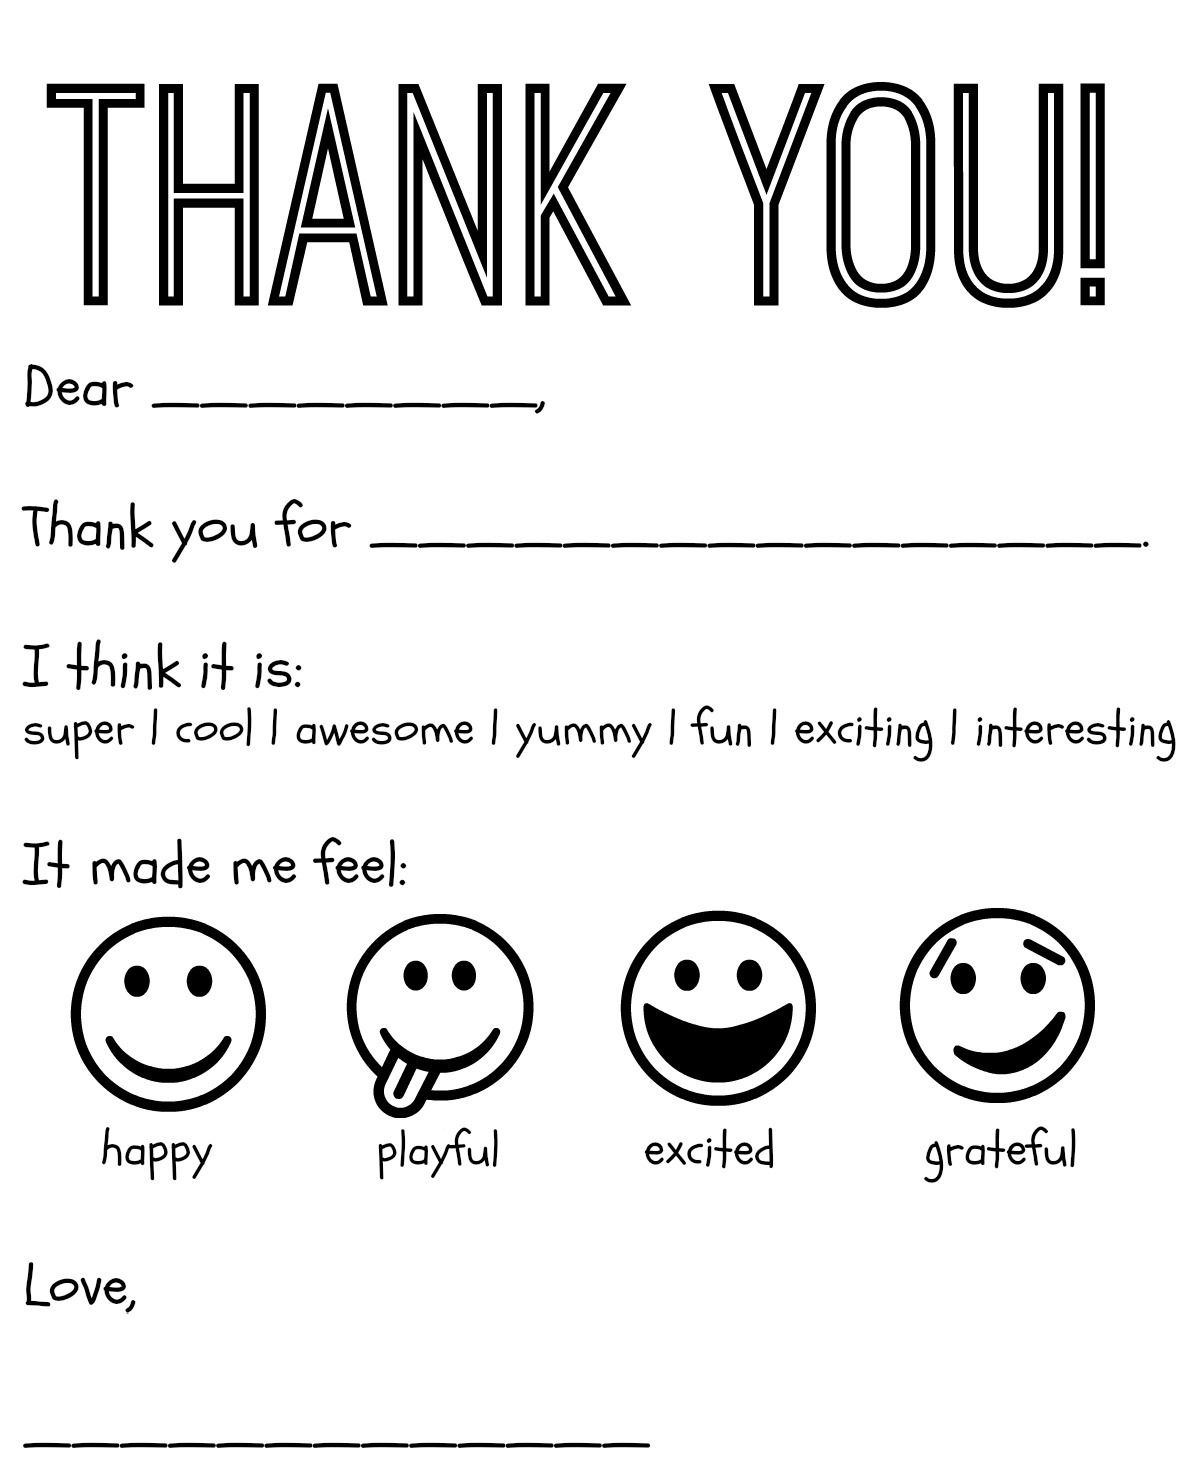 Free Printable Kids Thank You Cards To Color | Thank You Card - Free Printable Teacher Appreciation Cards To Color